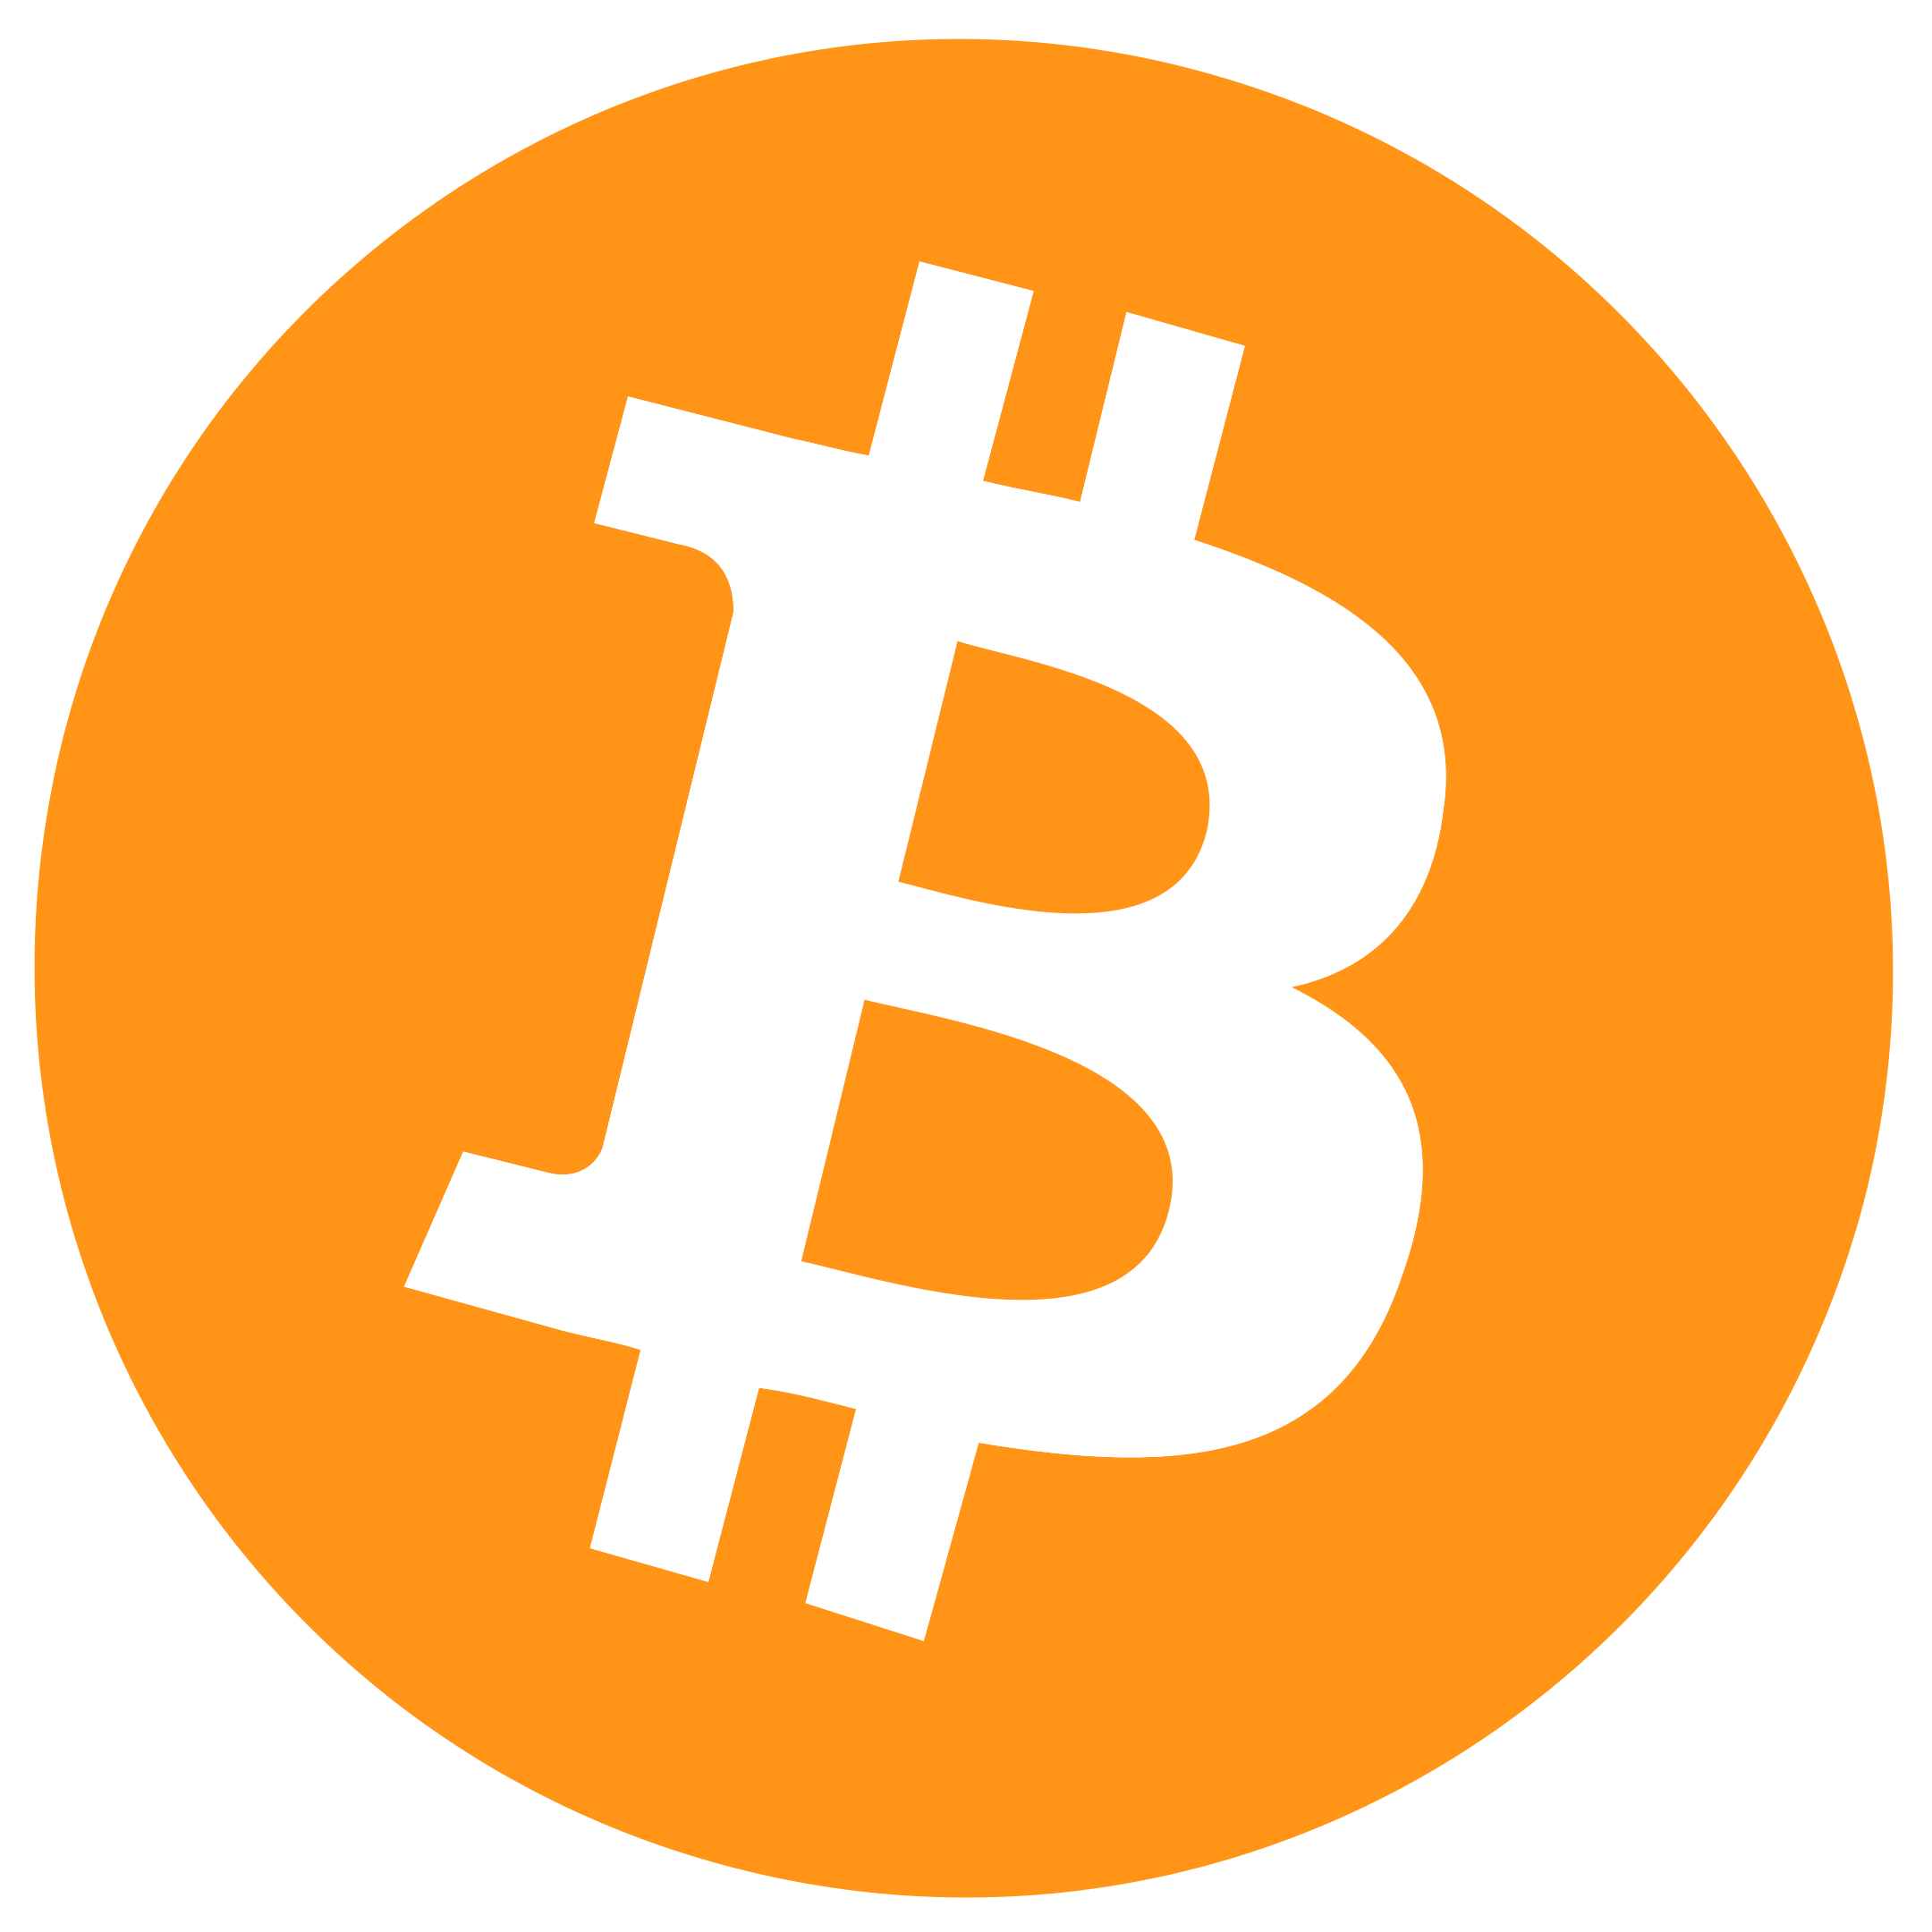 KunGaPro Buy me a coffe (or pay me) with BTC Link Thumbnail   Linktree